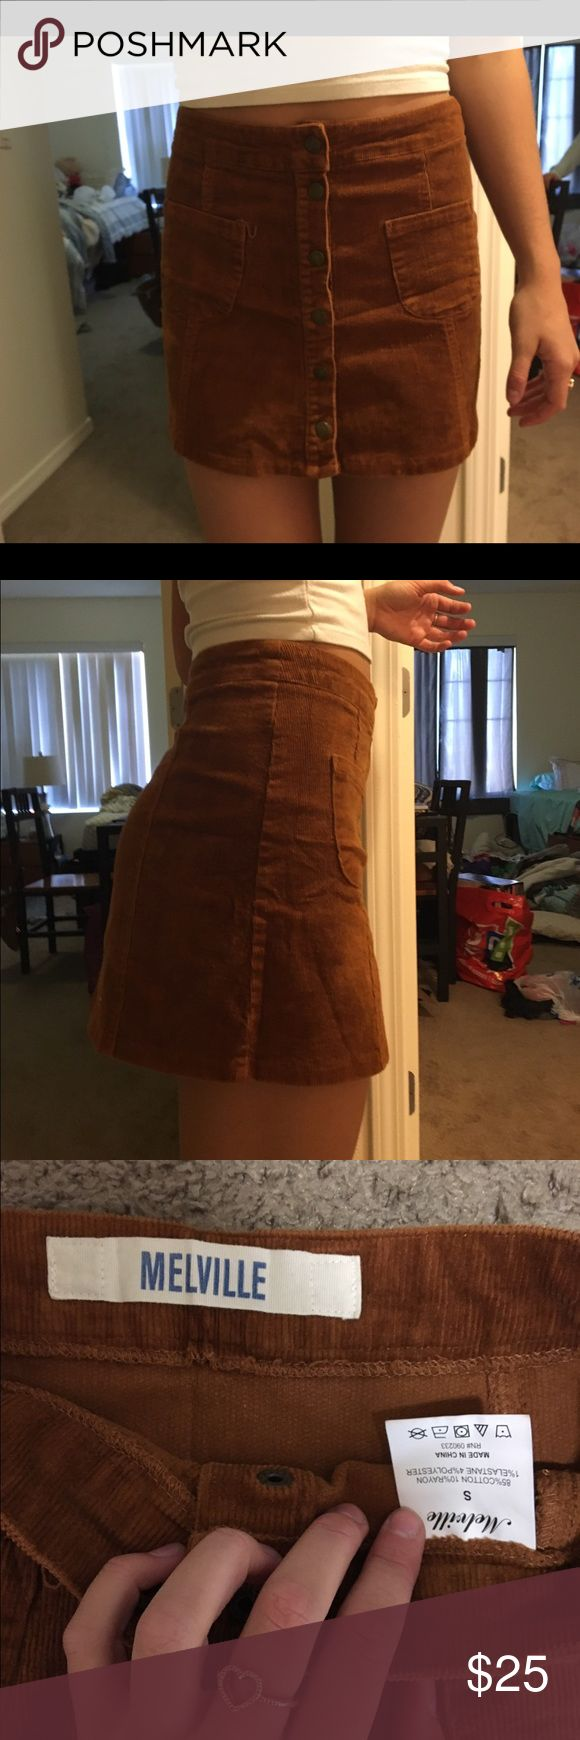 BRANDY MELVILLE SKIRT Super cute Brandy skirt! I love it but unfortunately only worn it once last year, I just grew too tall for it. Brandy Melville Skirts Mini